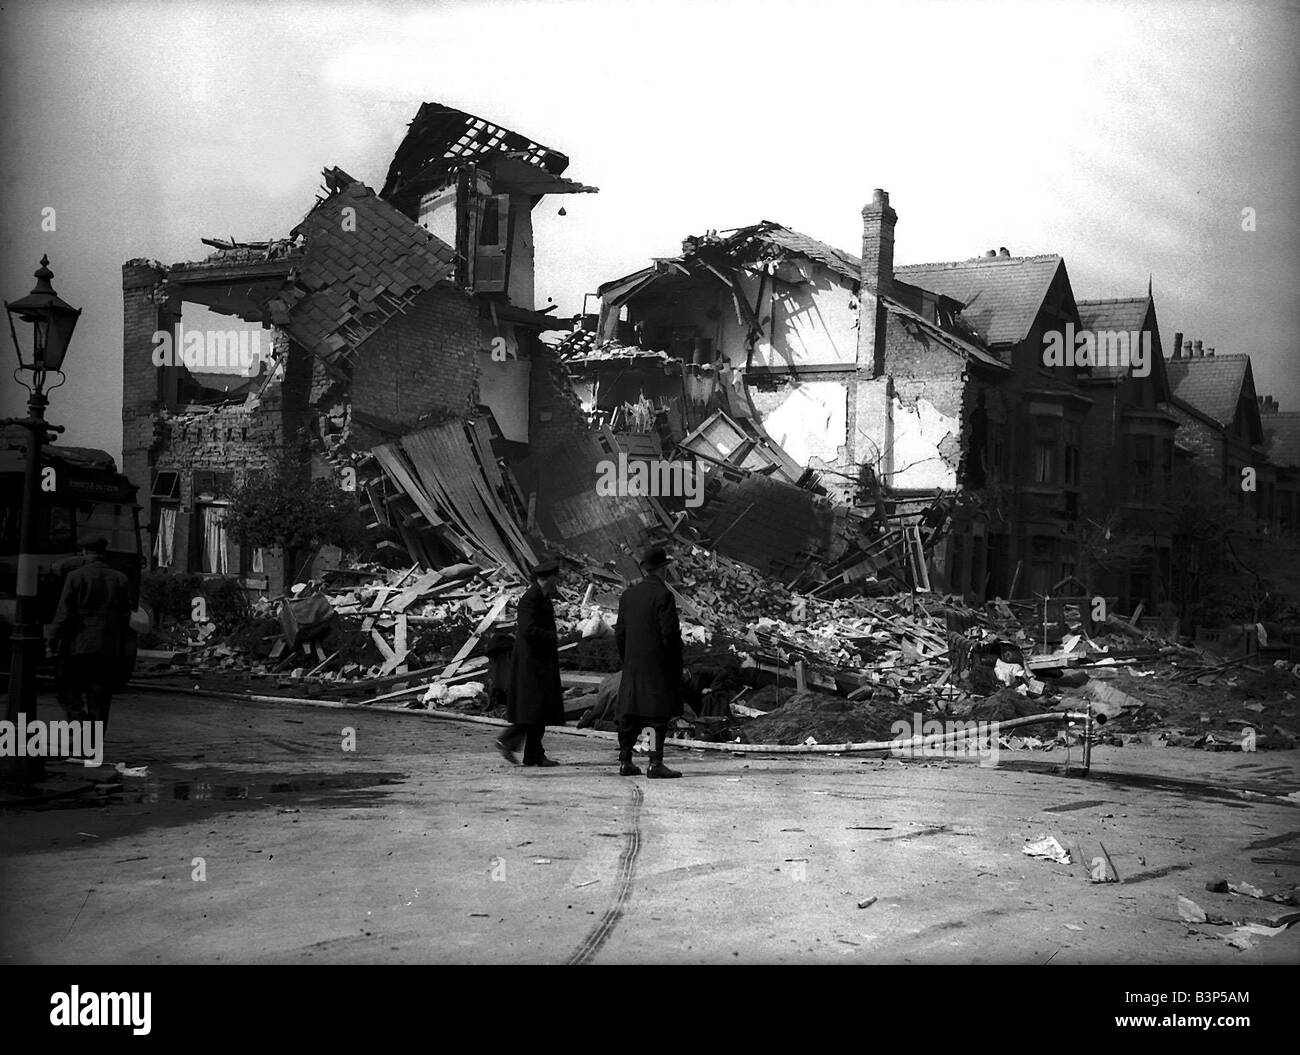 Bomb damage in Liverpool during WW2 - Stock Image